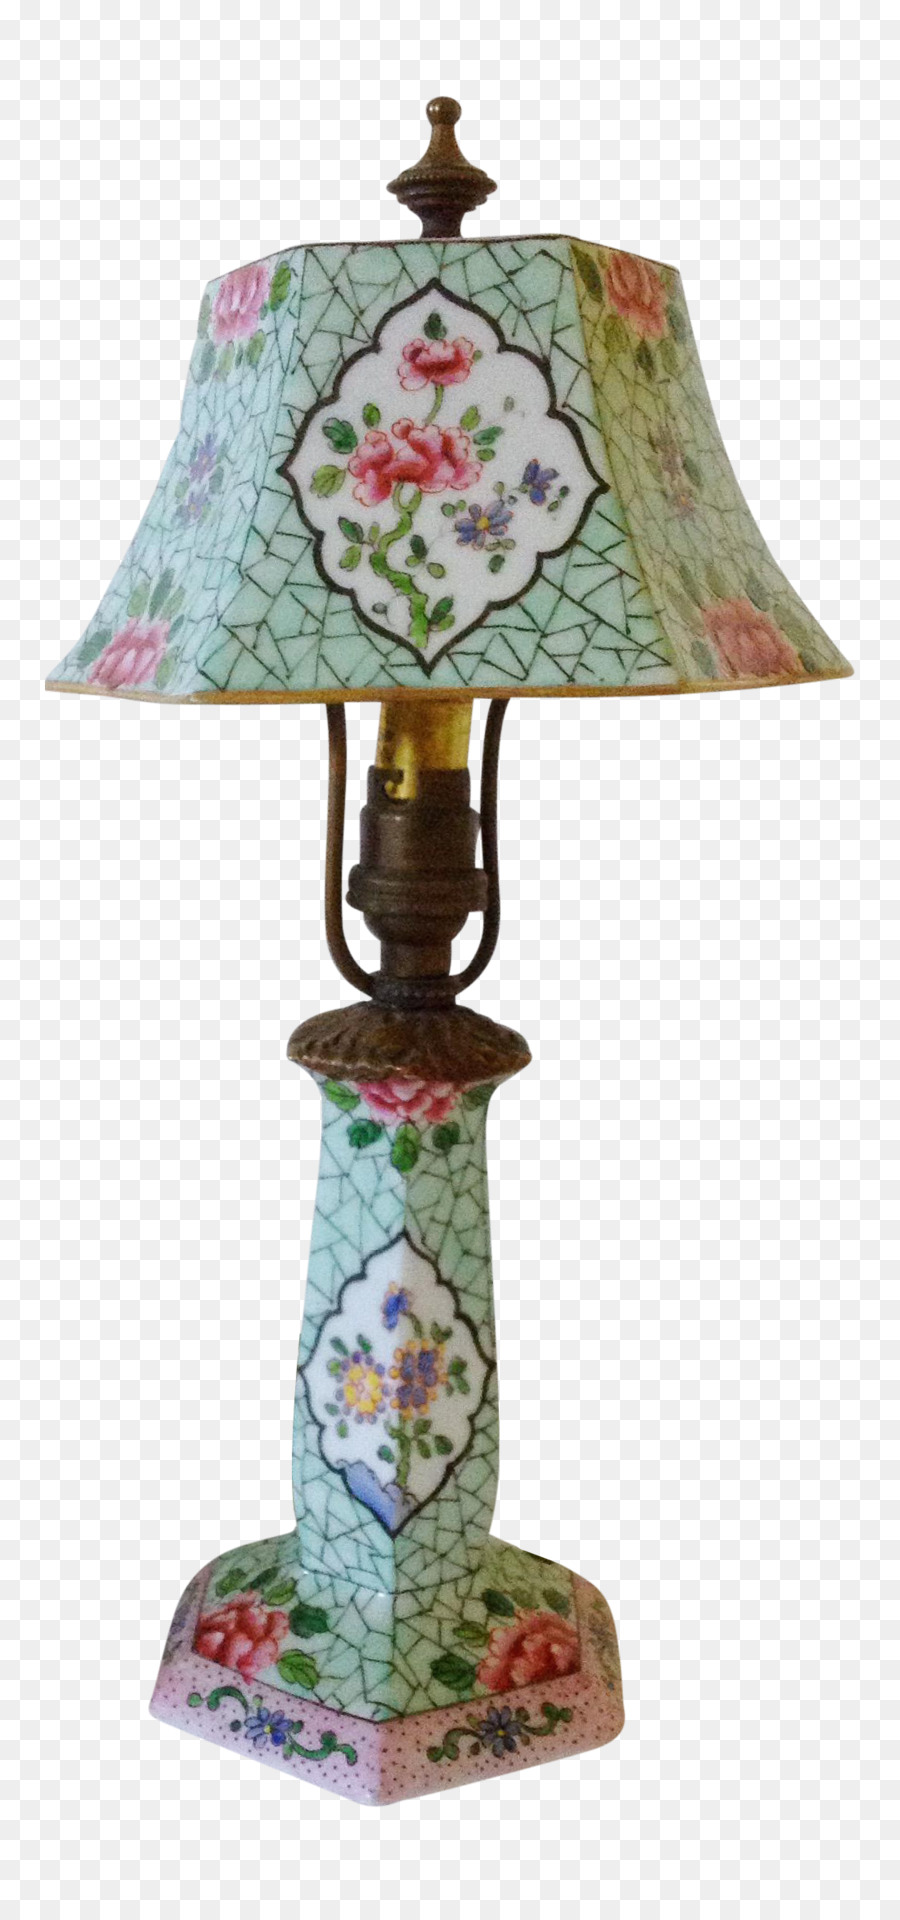 Etsy chinoiserie light fixture lamp shades boudoir chinoiserie png etsy chinoiserie light fixture lamp shades boudoir chinoiserie aloadofball